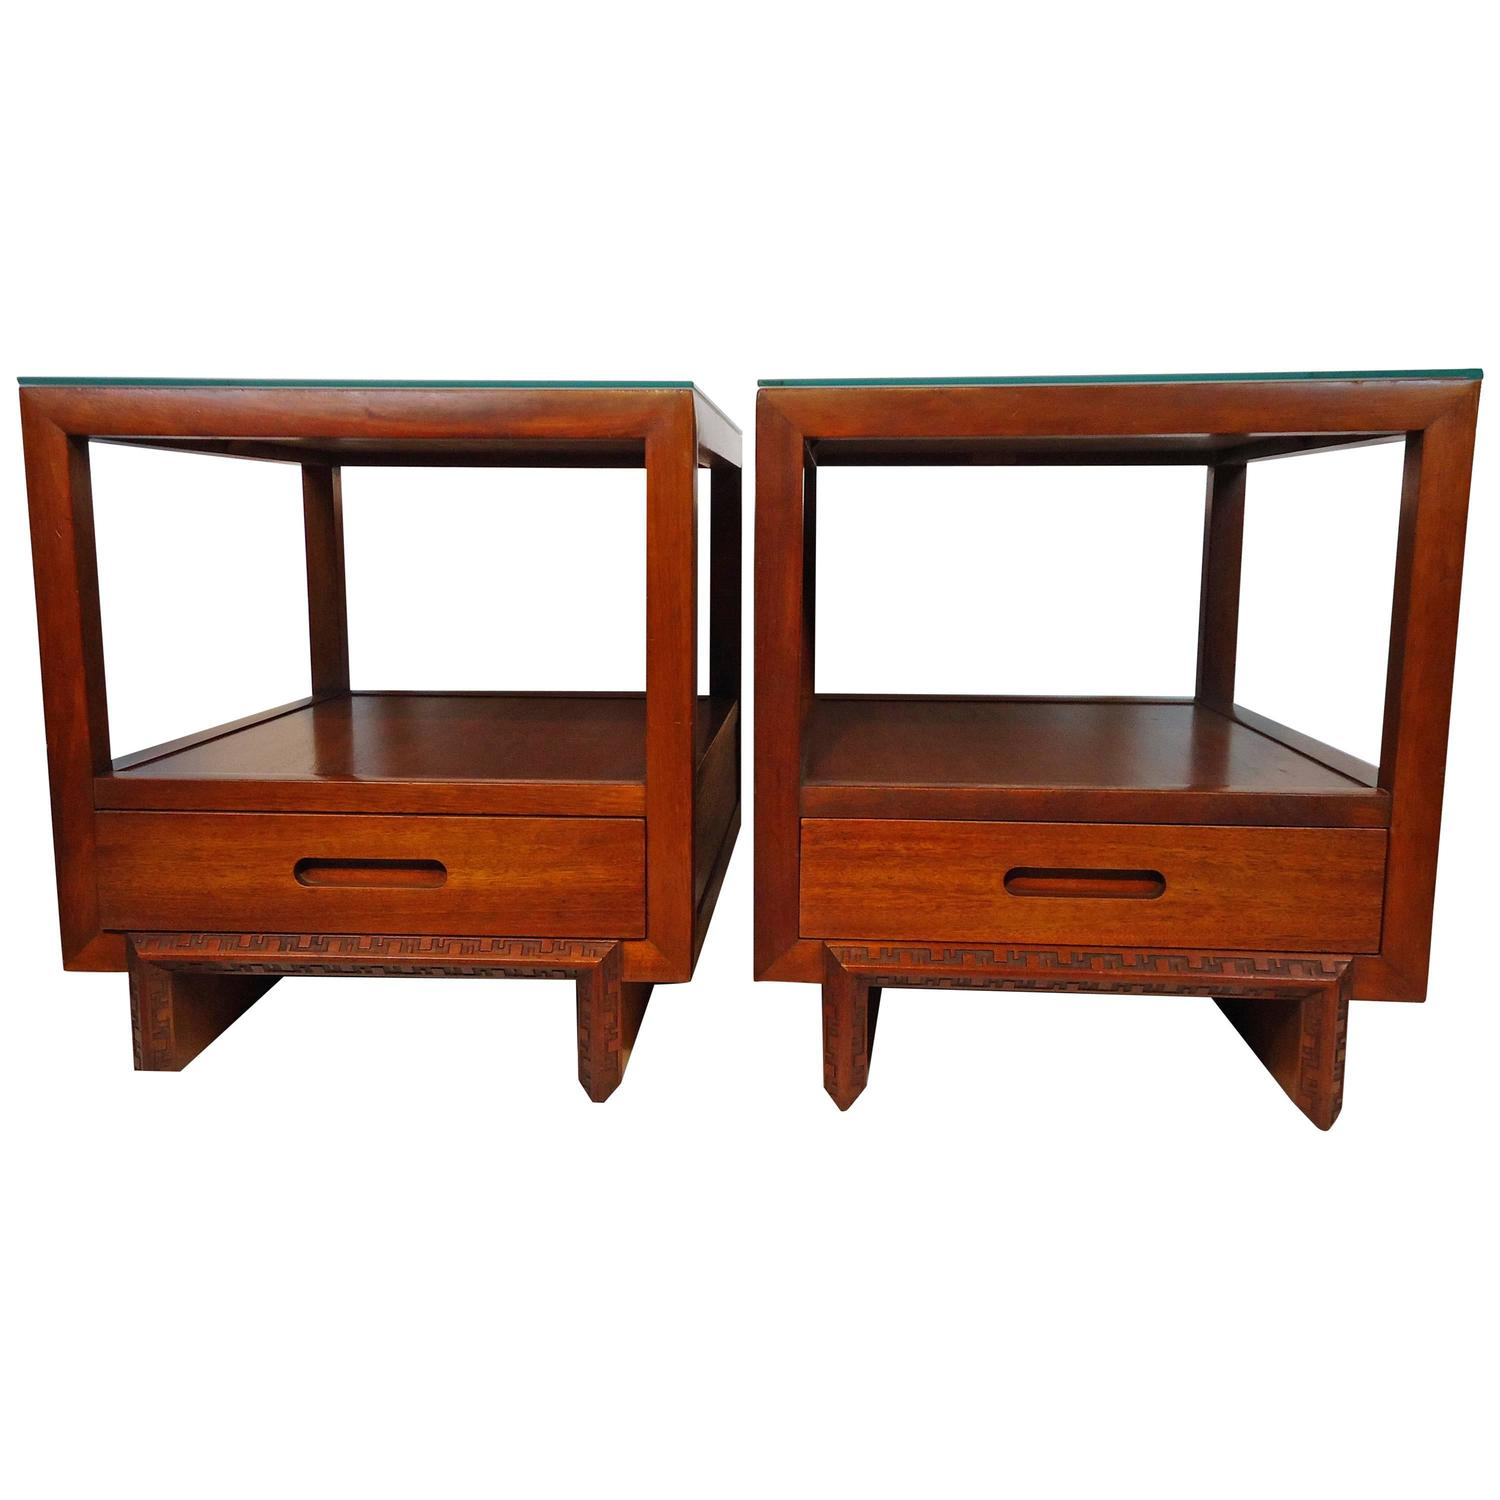 Wood Coffee Table together with Heritage Henredon Mahogany End Tables